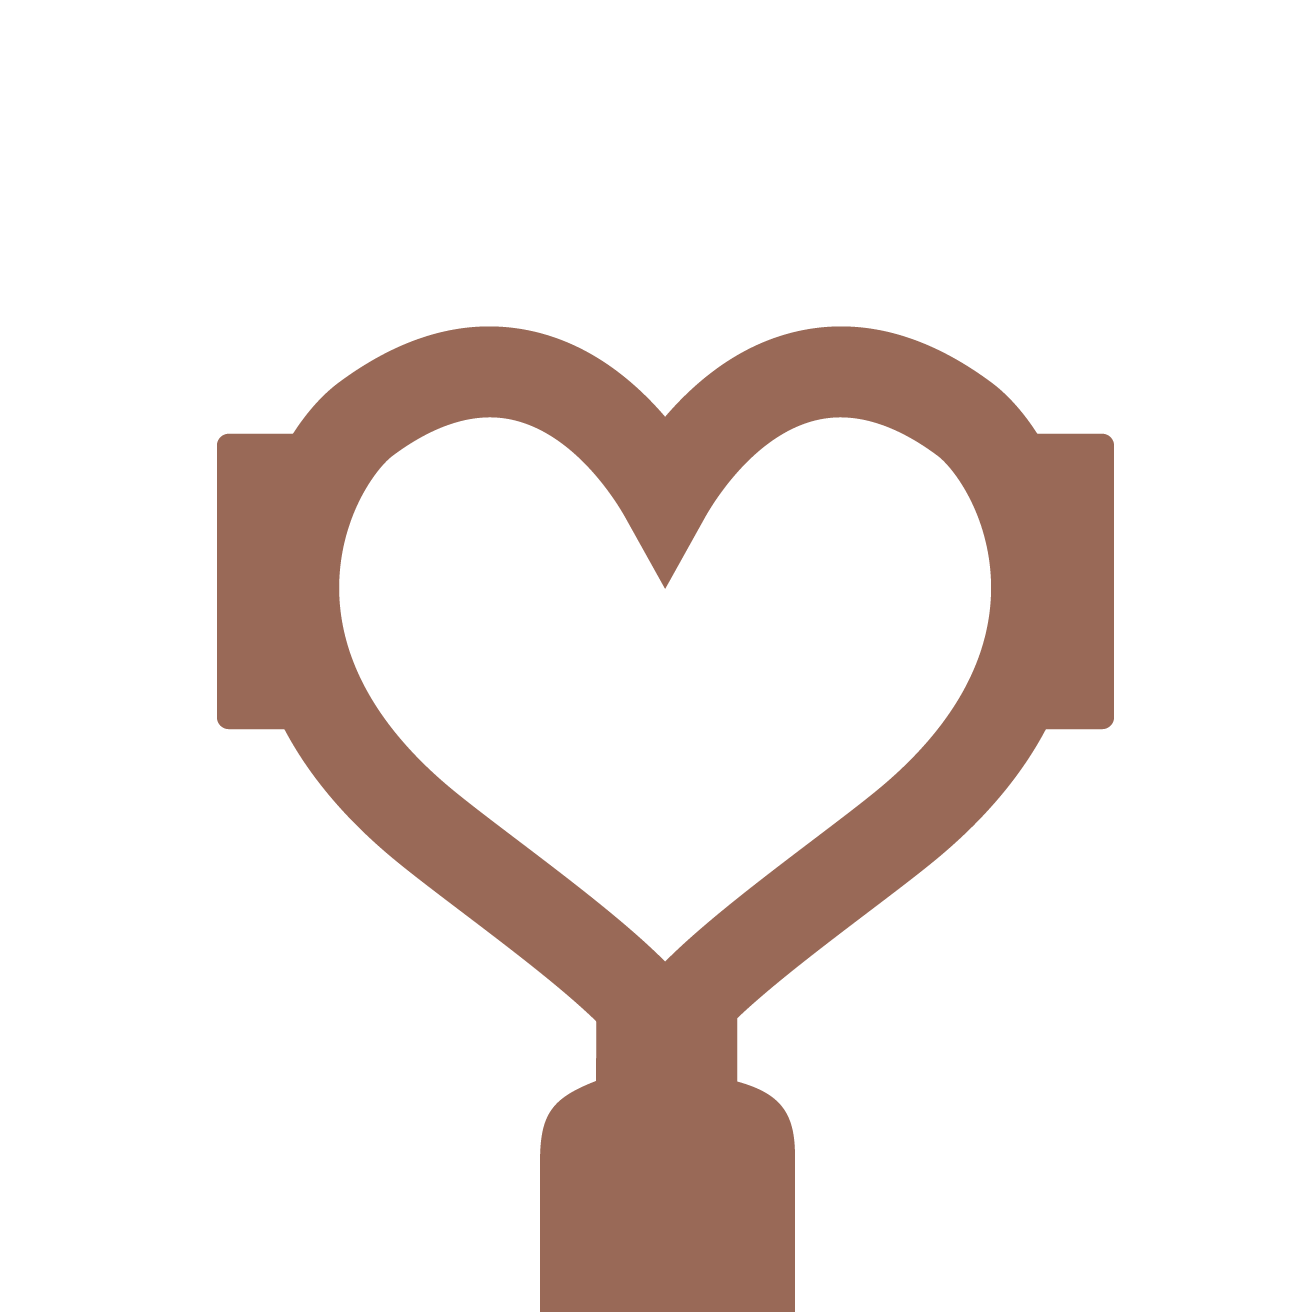 Moccamaster Technivorm KBG741 SELECT - Pastel Blue with FREE 250g bag of Coffee